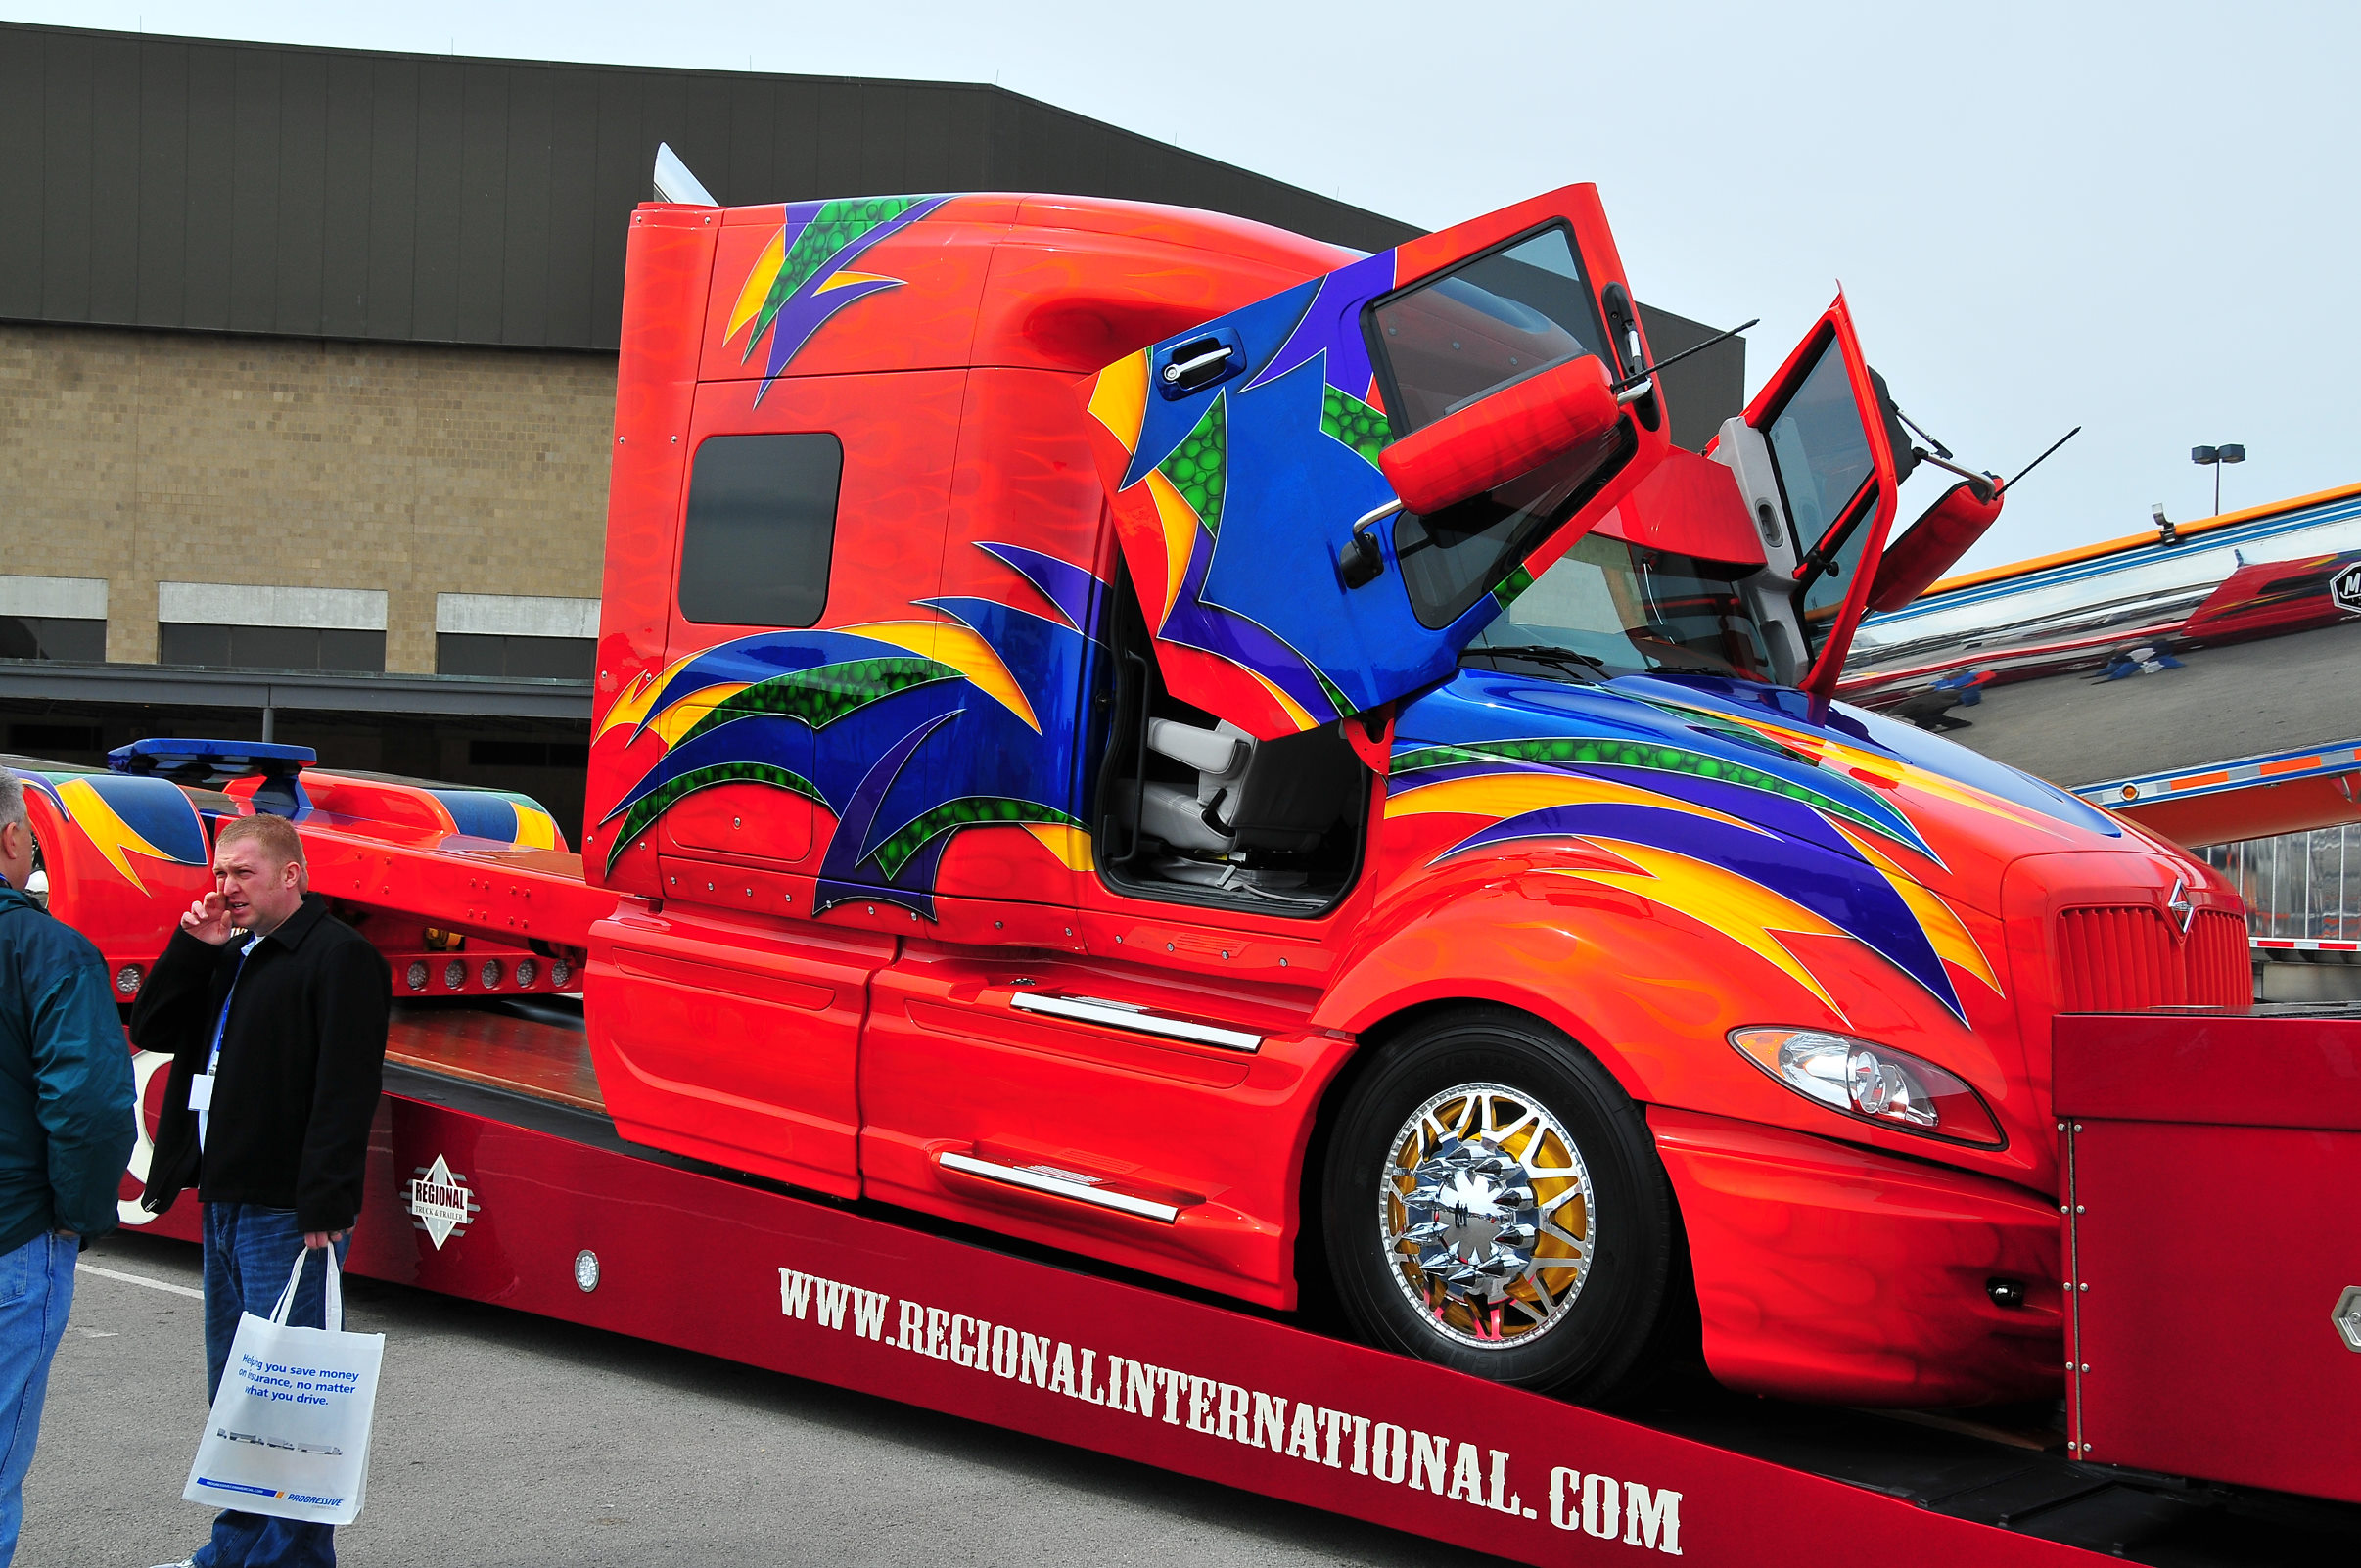 2008 International Prostar Mayhem Wallpaper 2412x1602 HD Wallpapers Download free images and photos [musssic.tk]